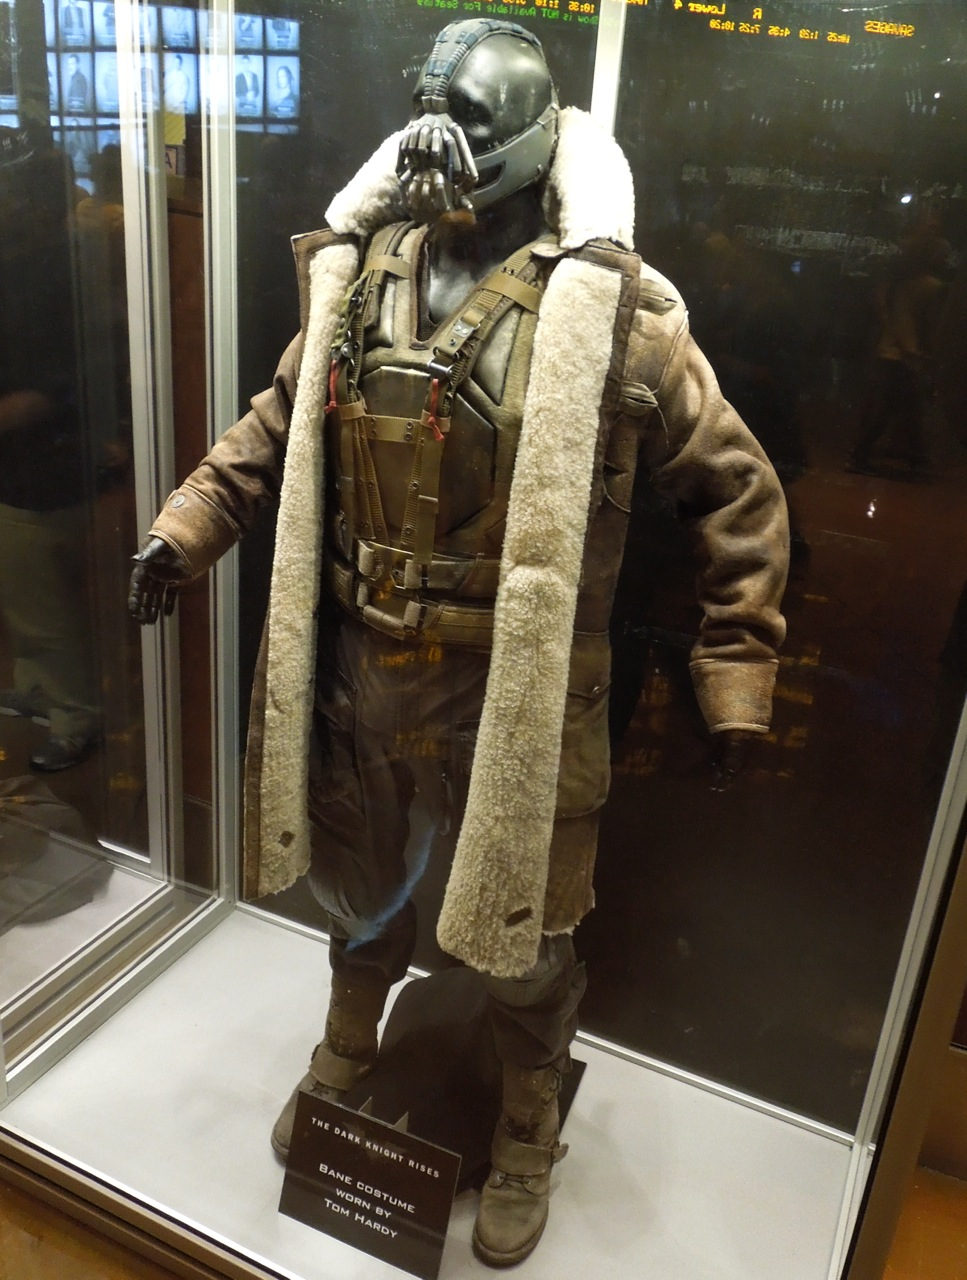 Dark Knight Rises Bane movie costume & Hollywood Movie Costumes and Props: Tom Hardyu0027s Bane costume from ...